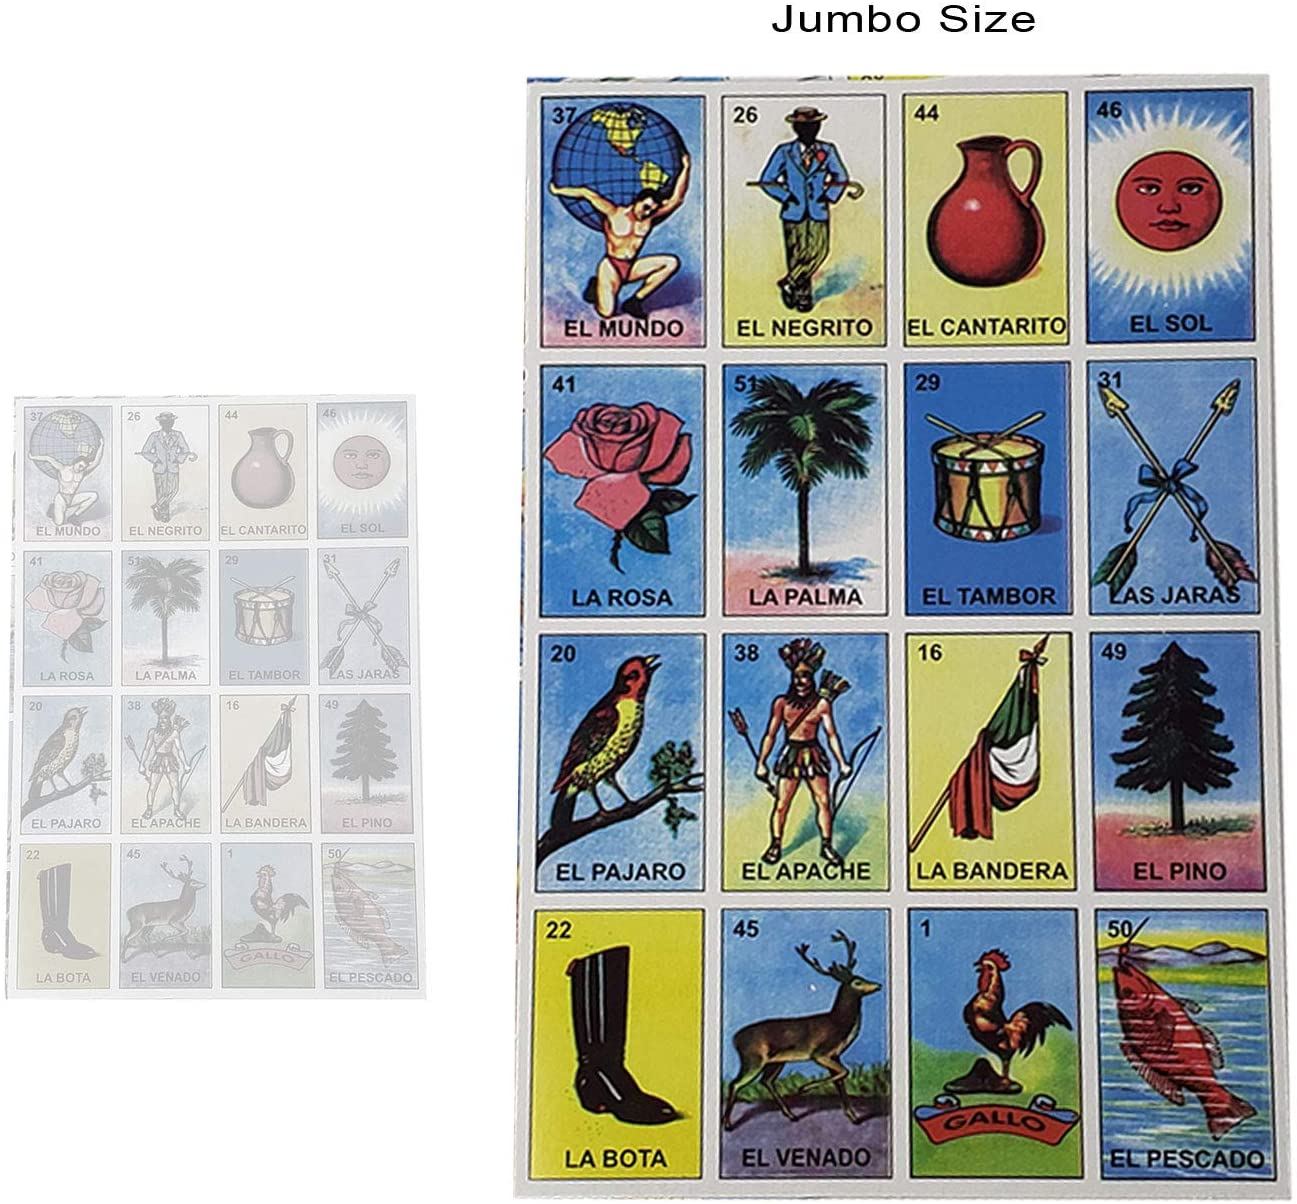 Mexican Jumbo Cardboard Loteria Board Game 10 Templates and Deck with 54 Cards of Card Family Game